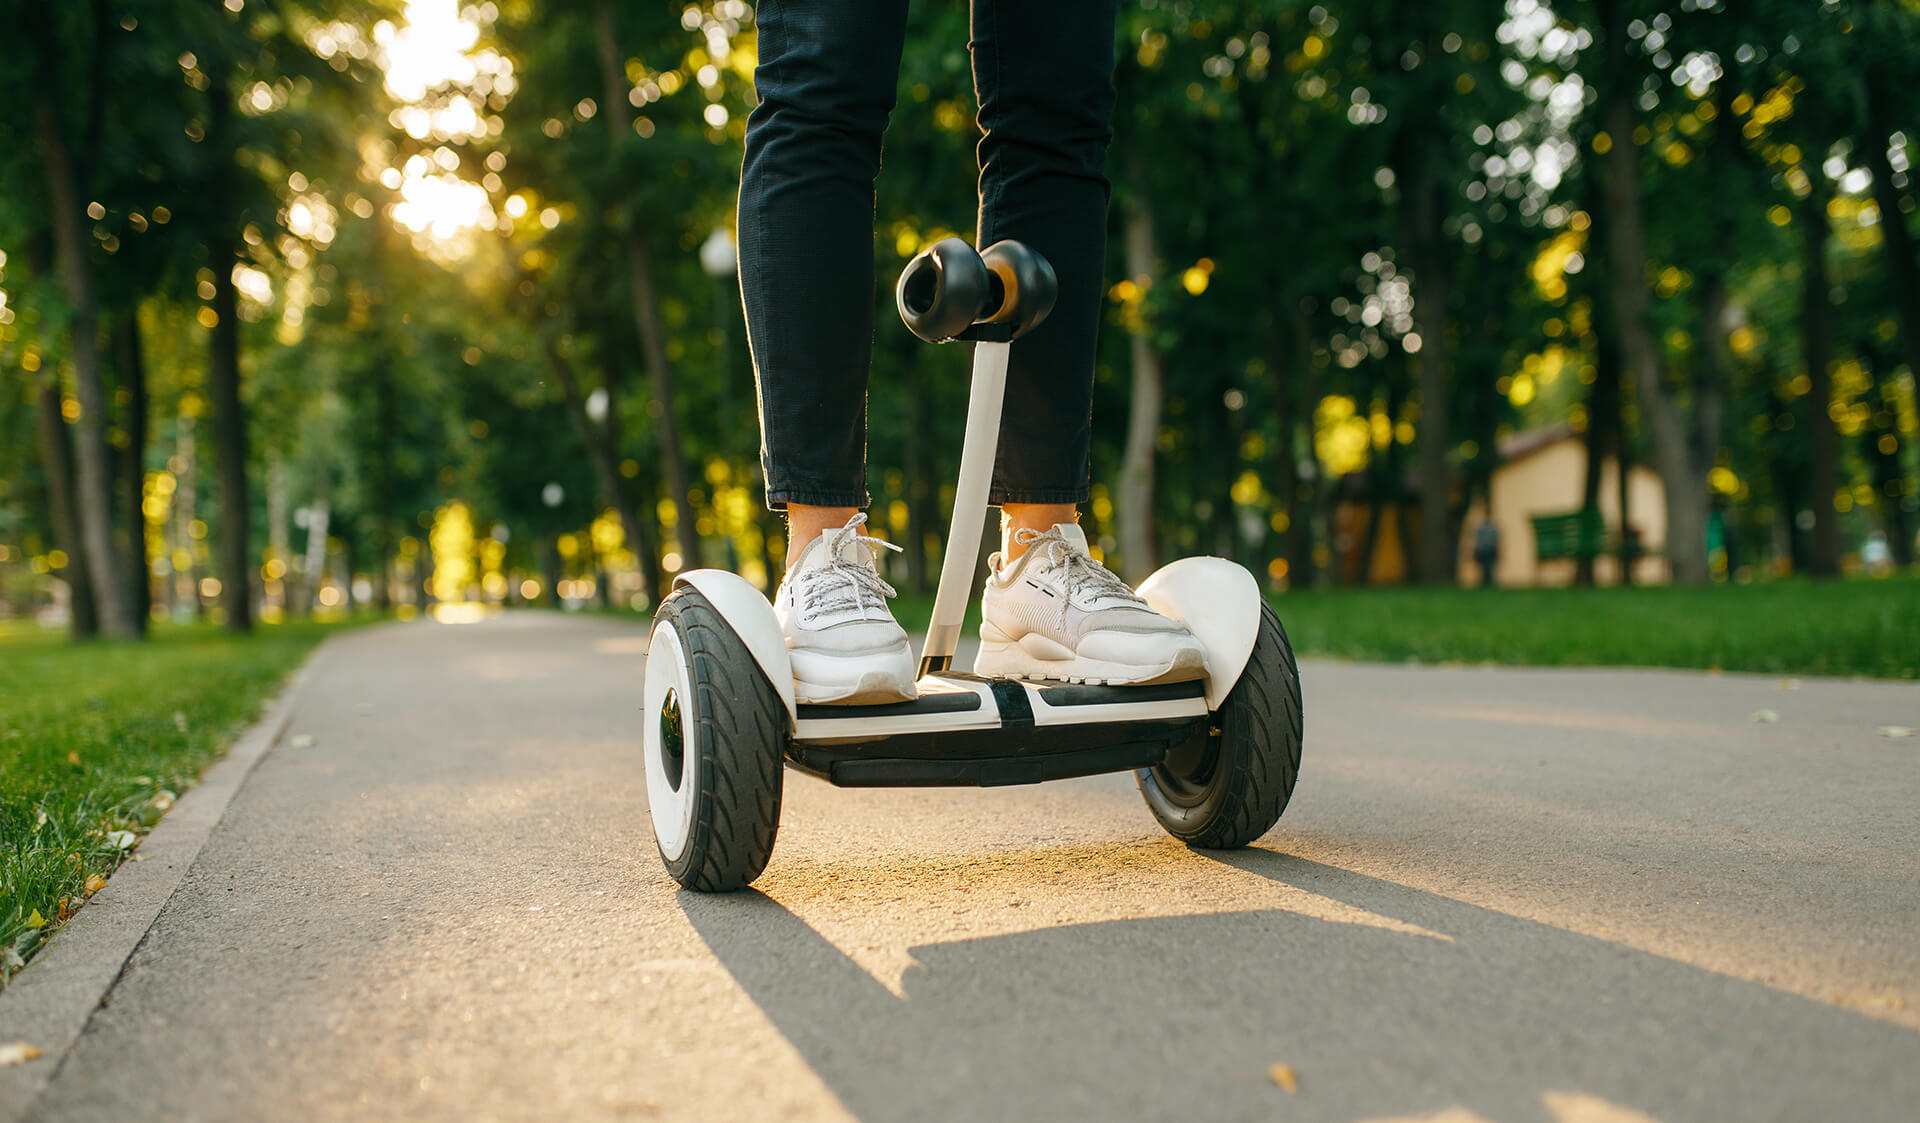 young-male-person-riding-on-gyroboard-in-park-TENXA32 (1)